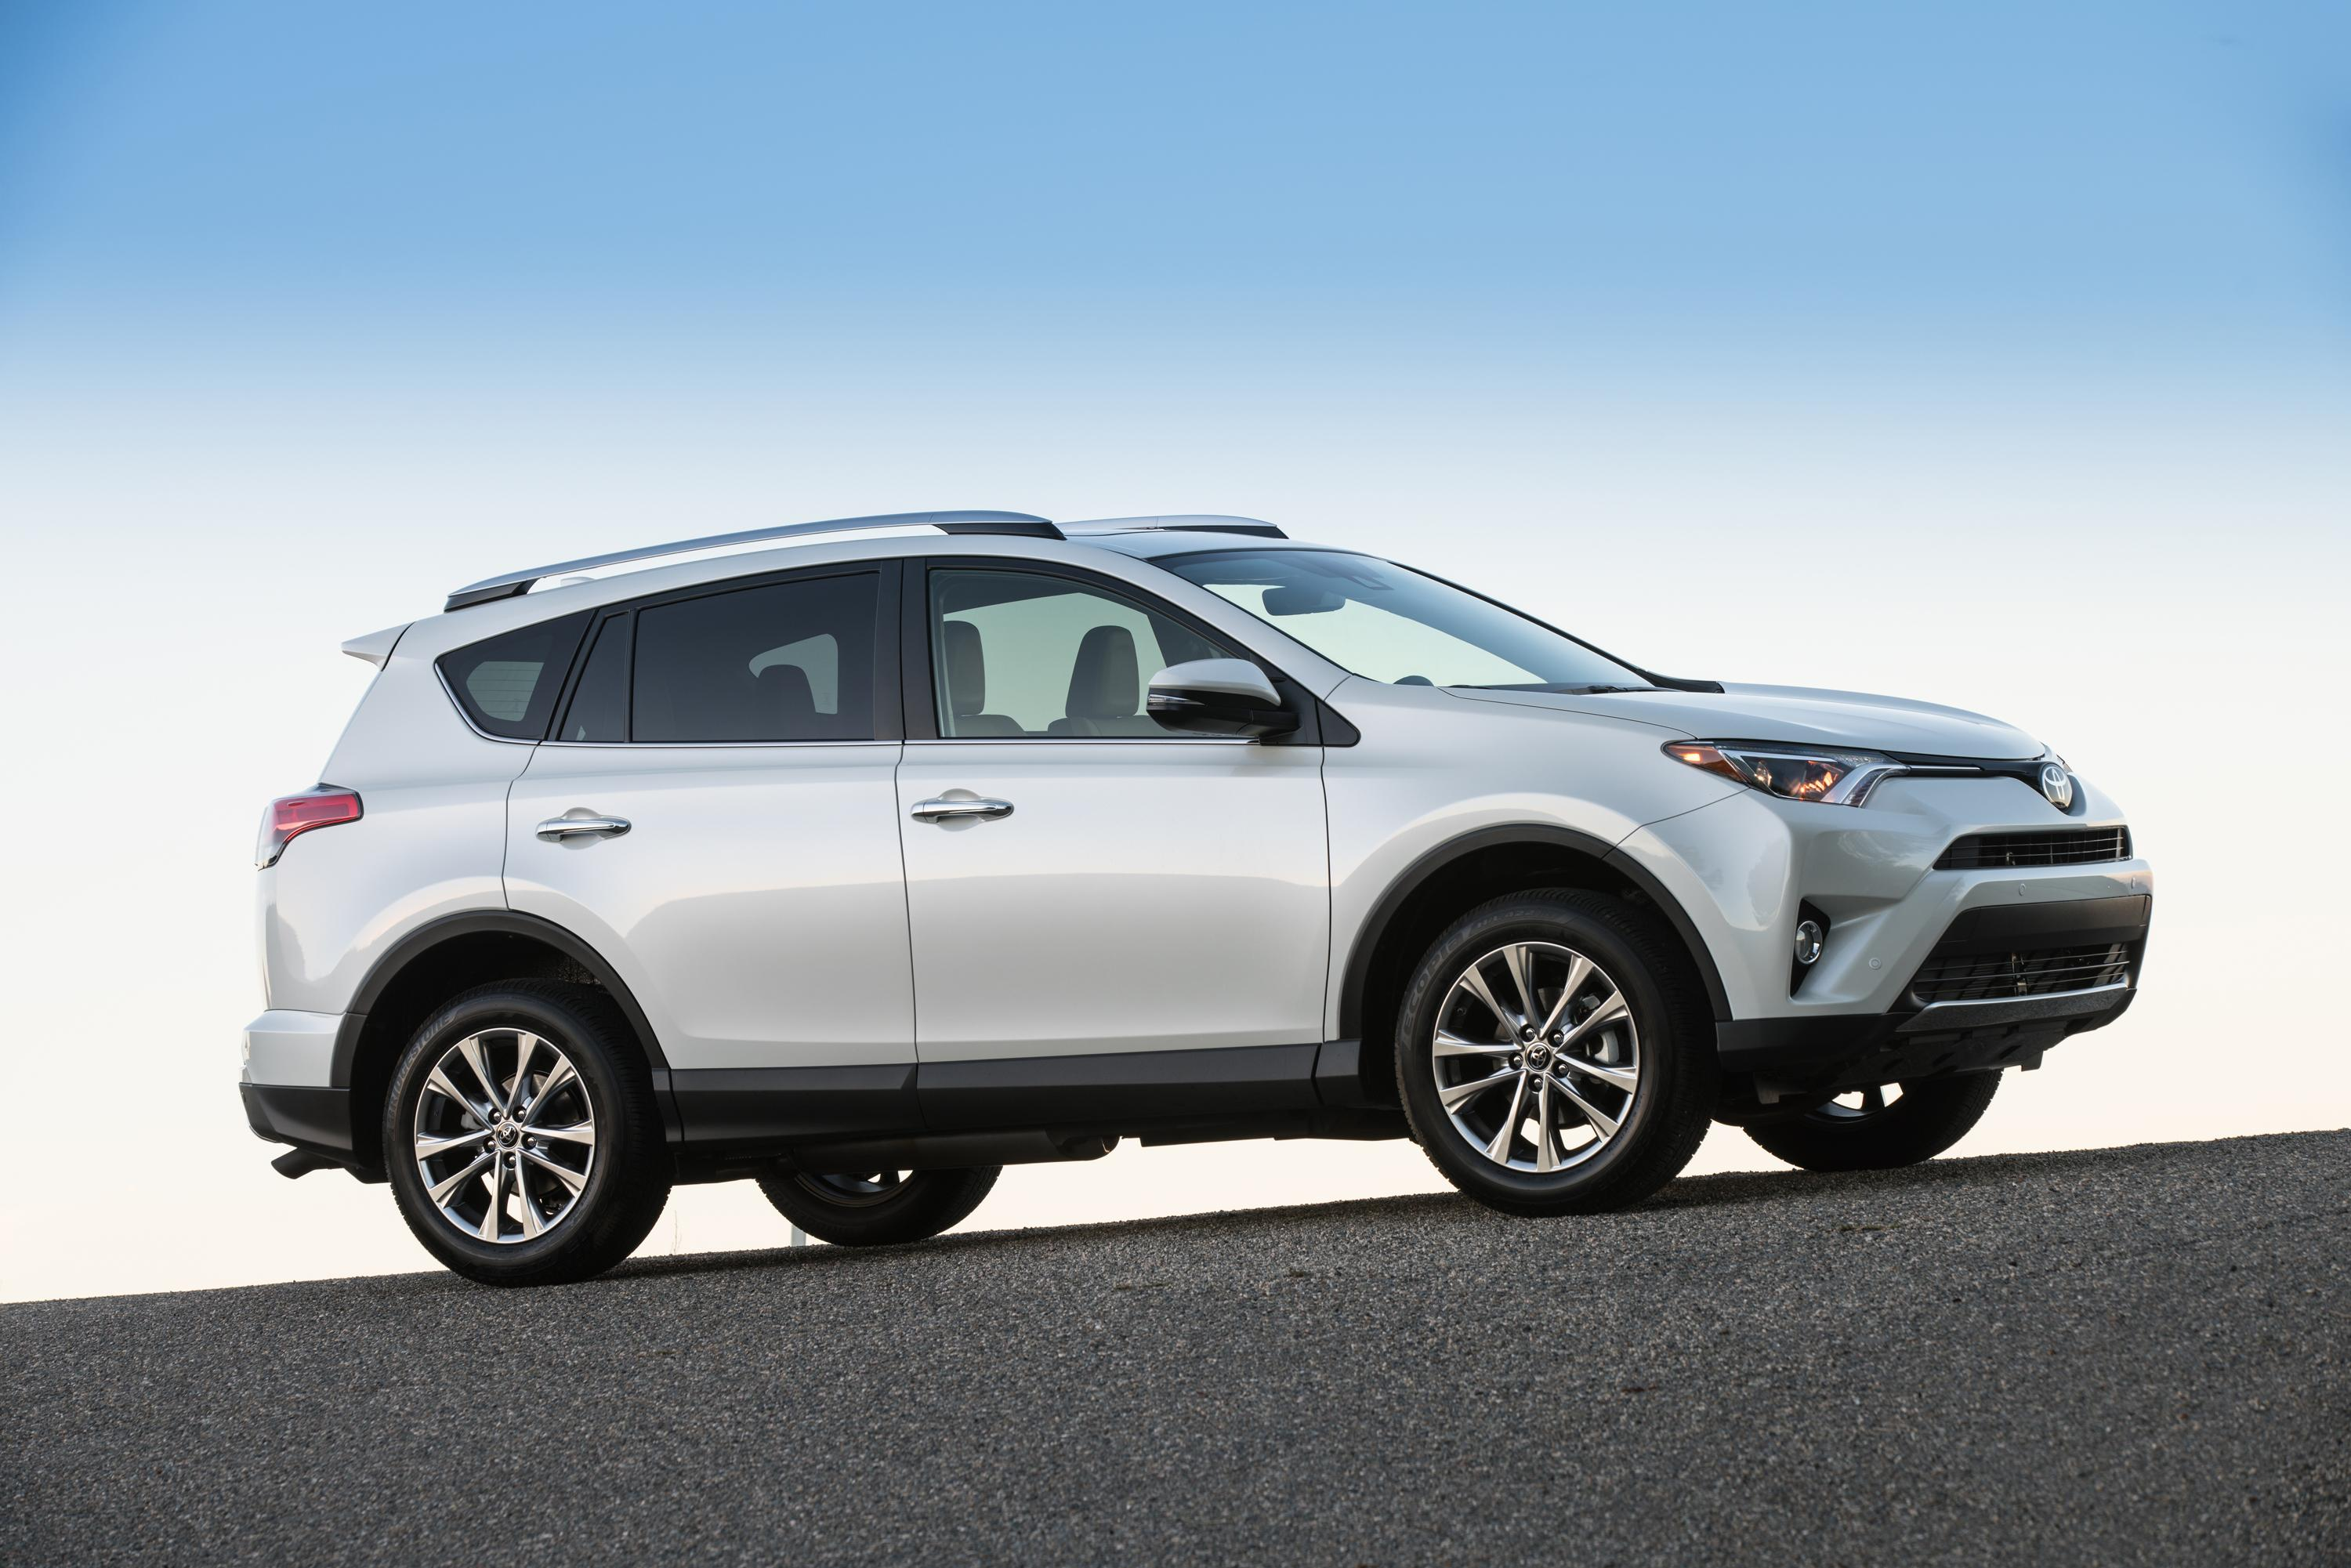 2017 Toyota RAV4 At Waite Toyota In Watertown